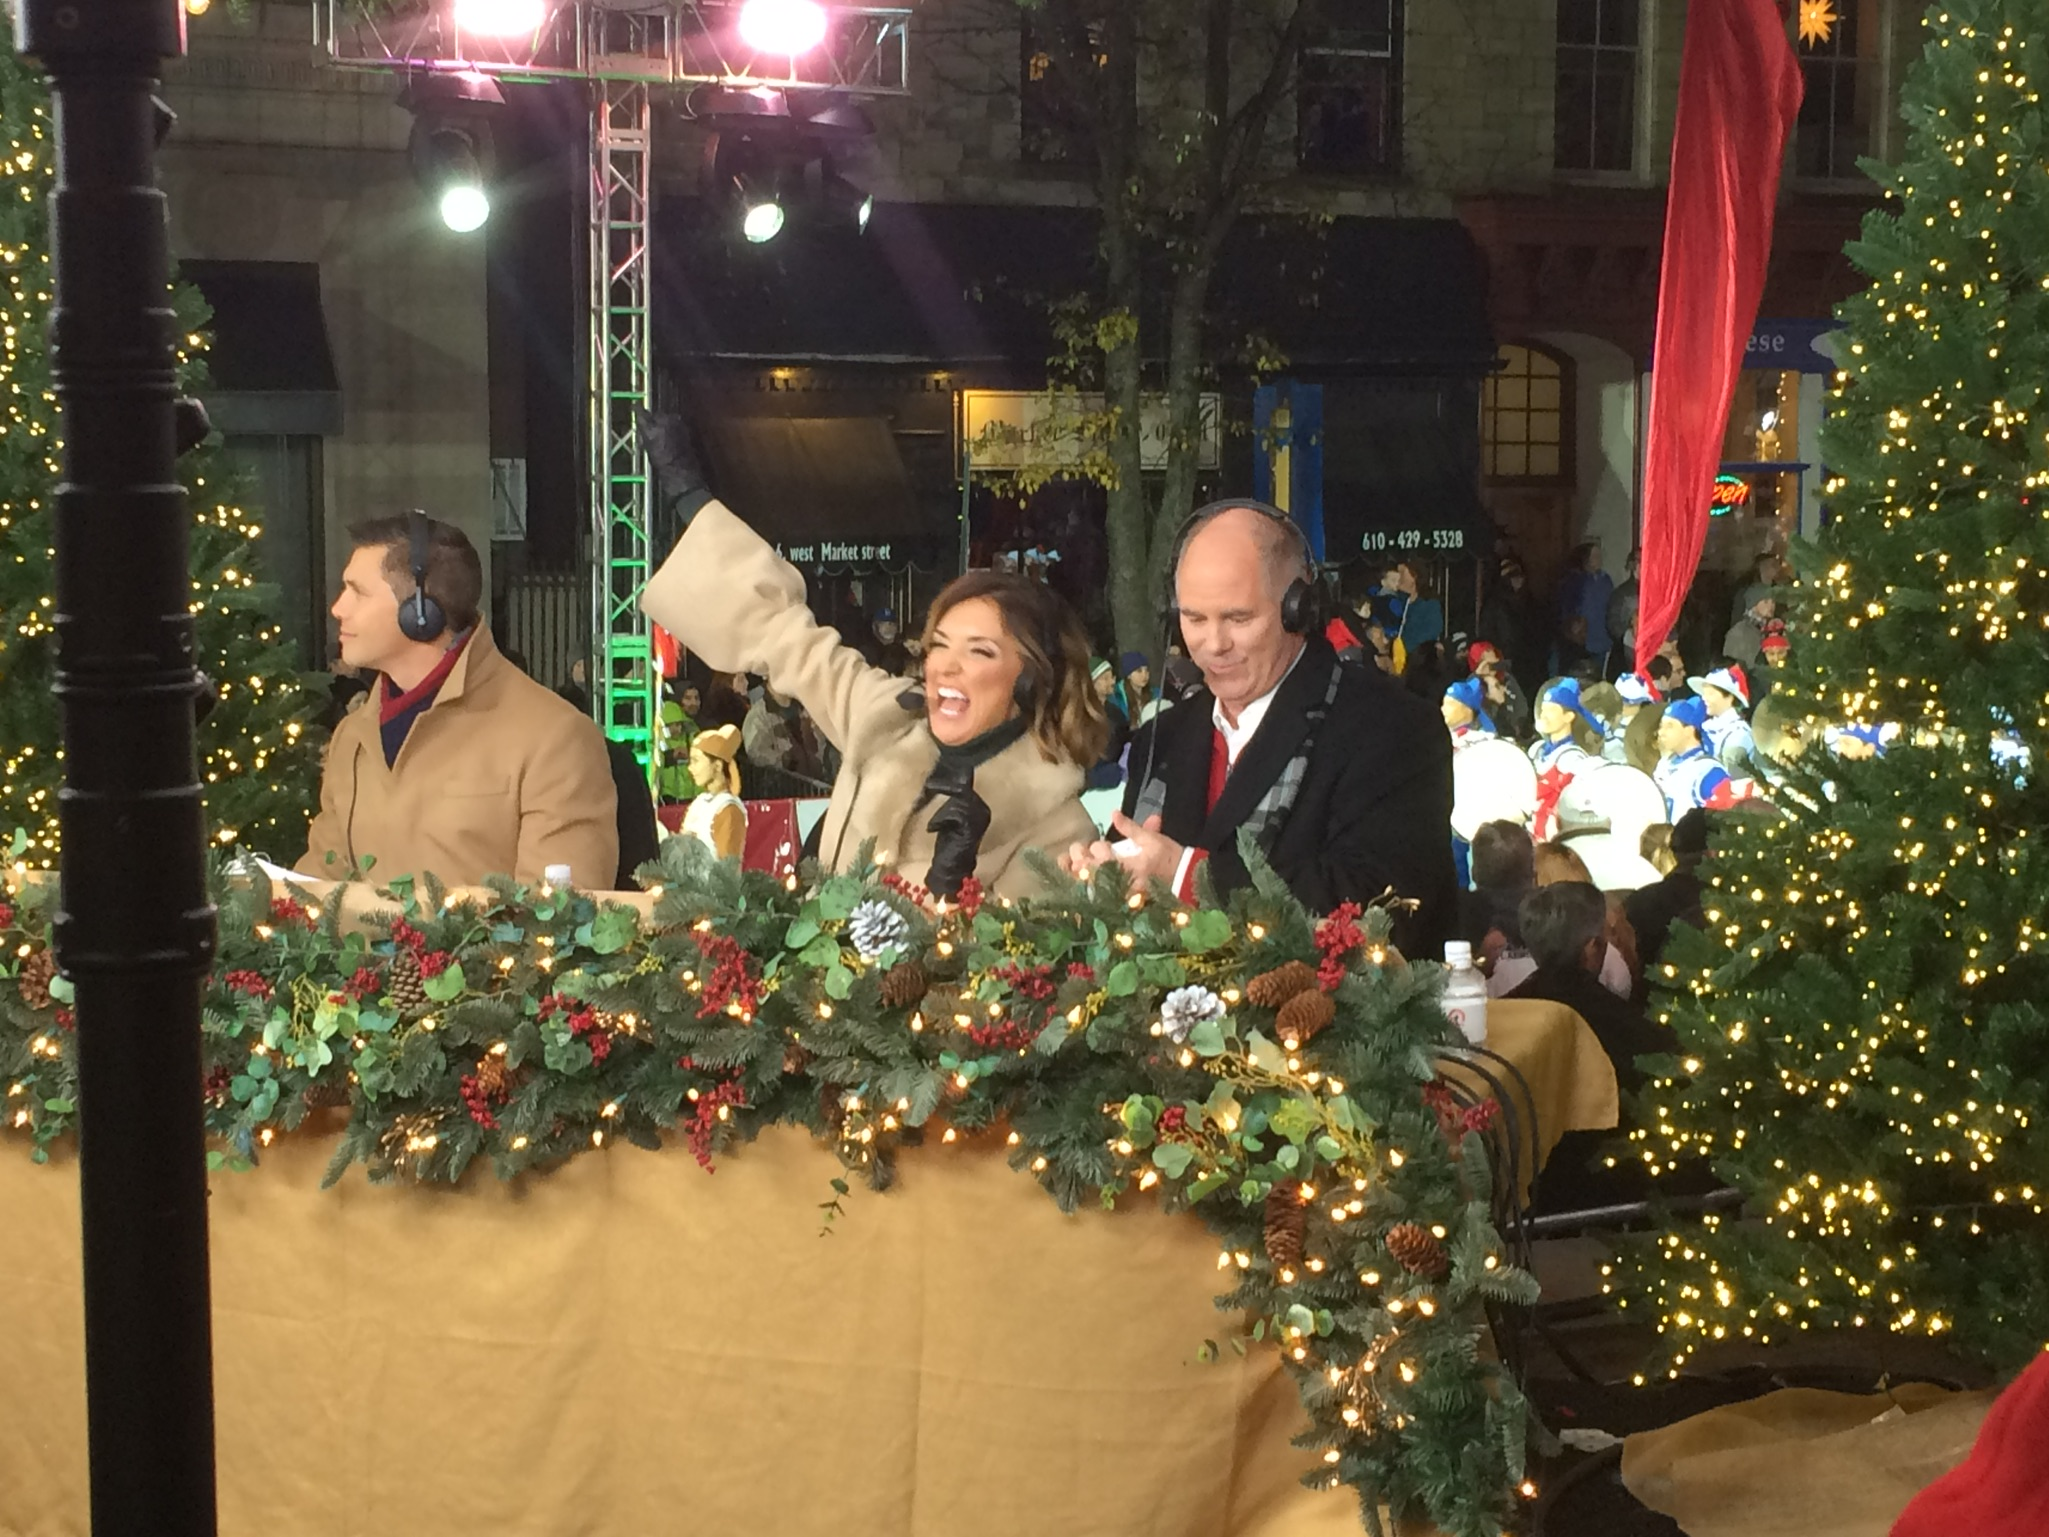 2018 QVC West Chester Christmas Parade